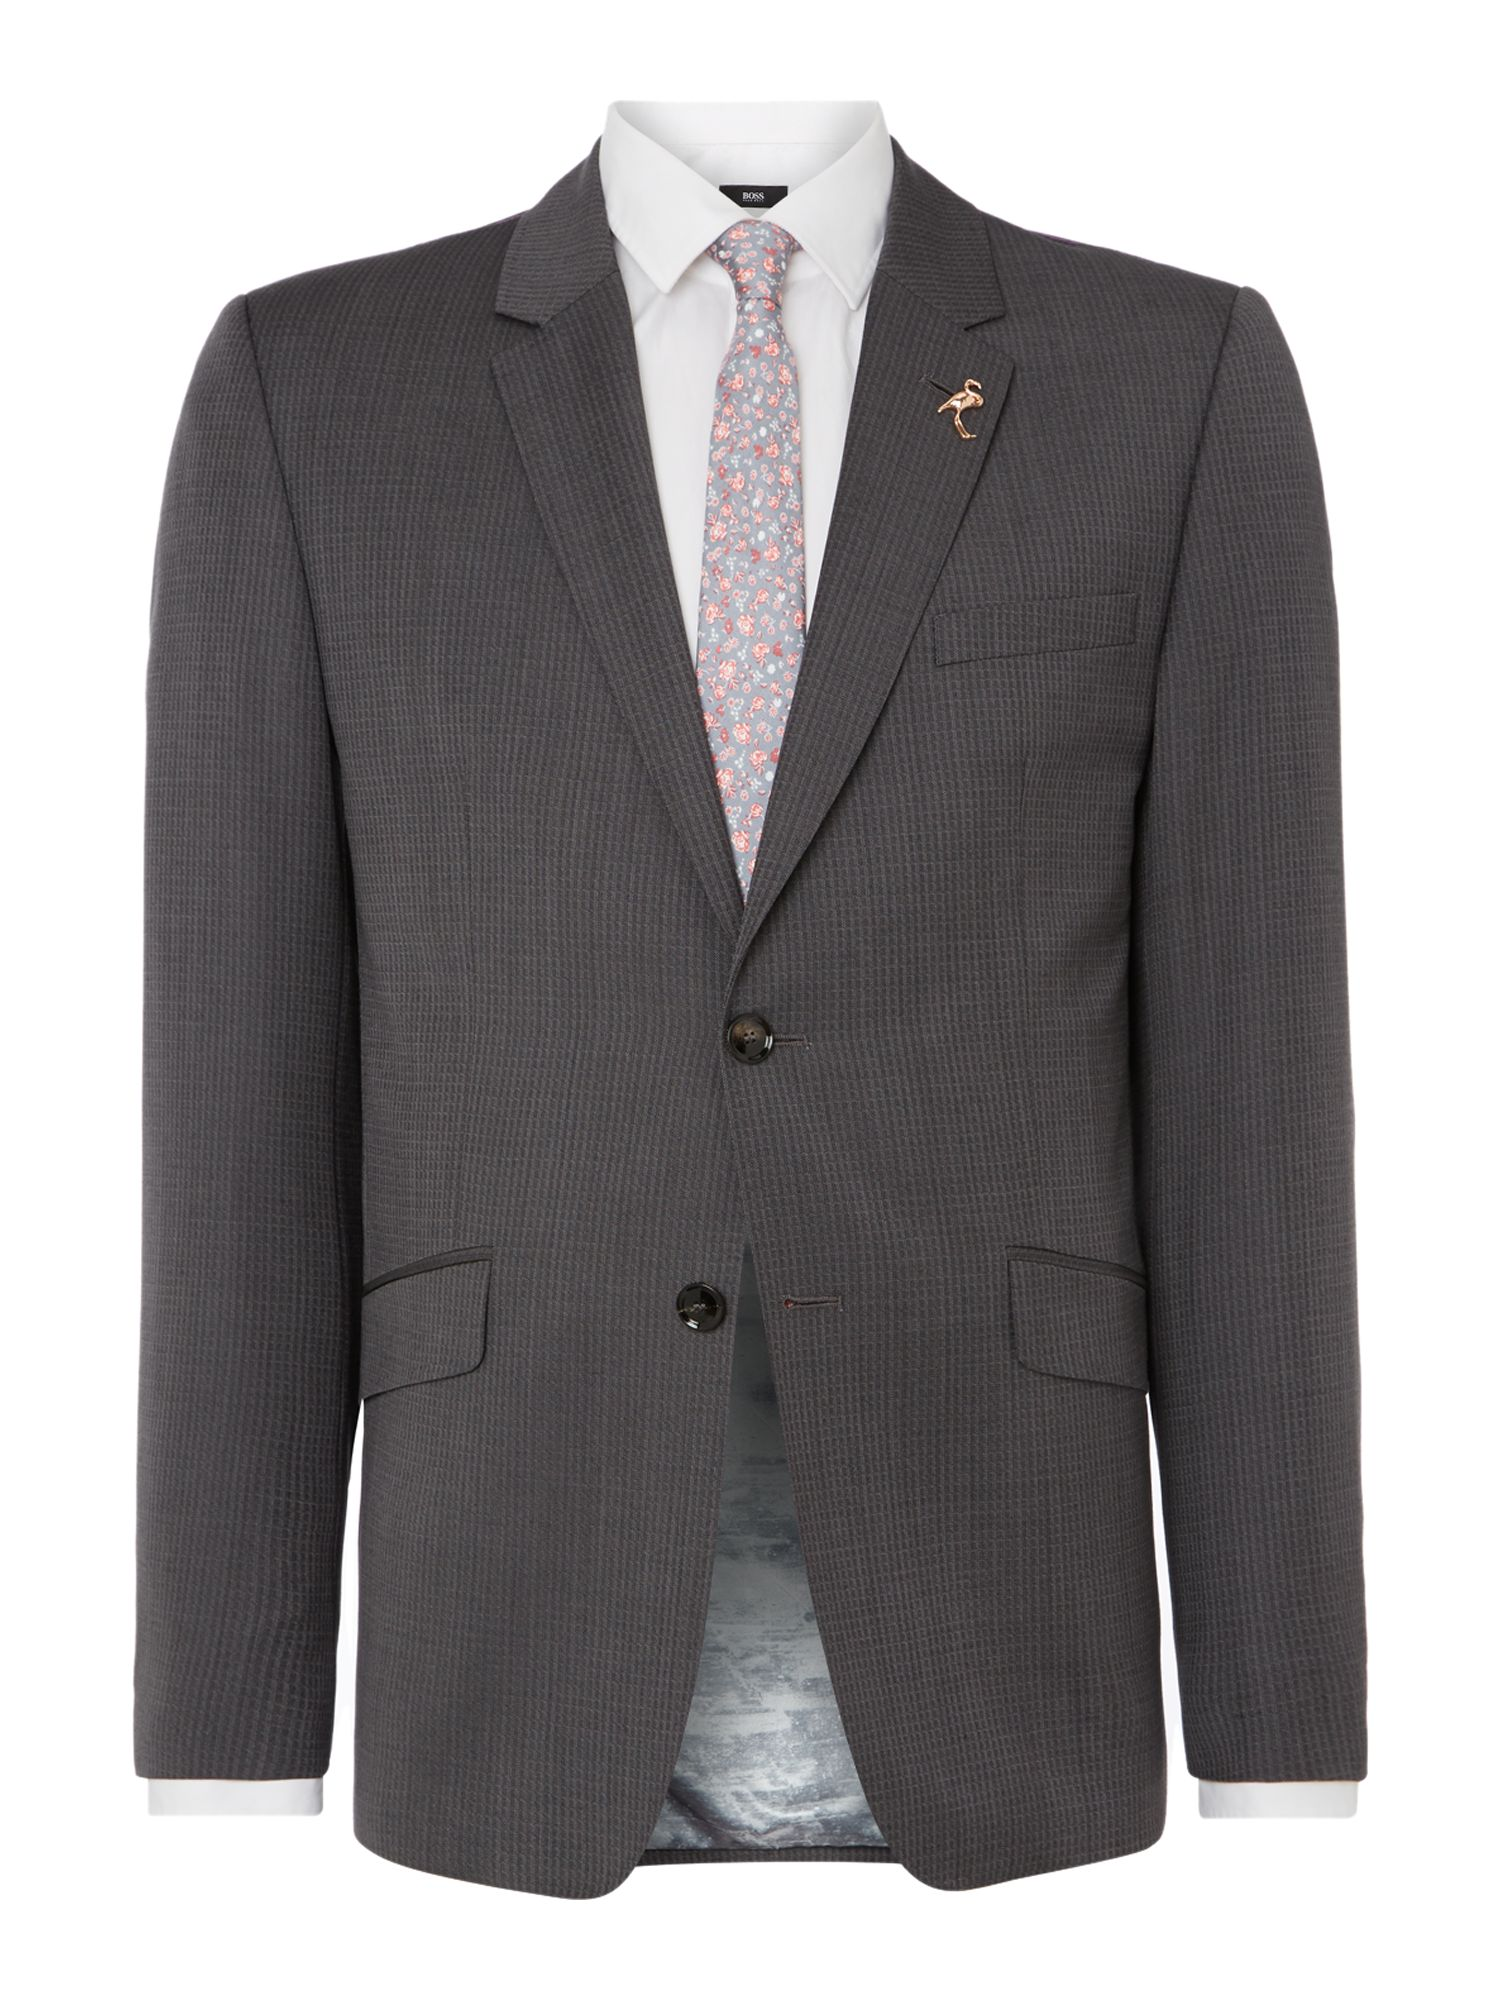 Men's Ted Baker Mitten Textured Grid Slim Fit Suit Jacket, Grey